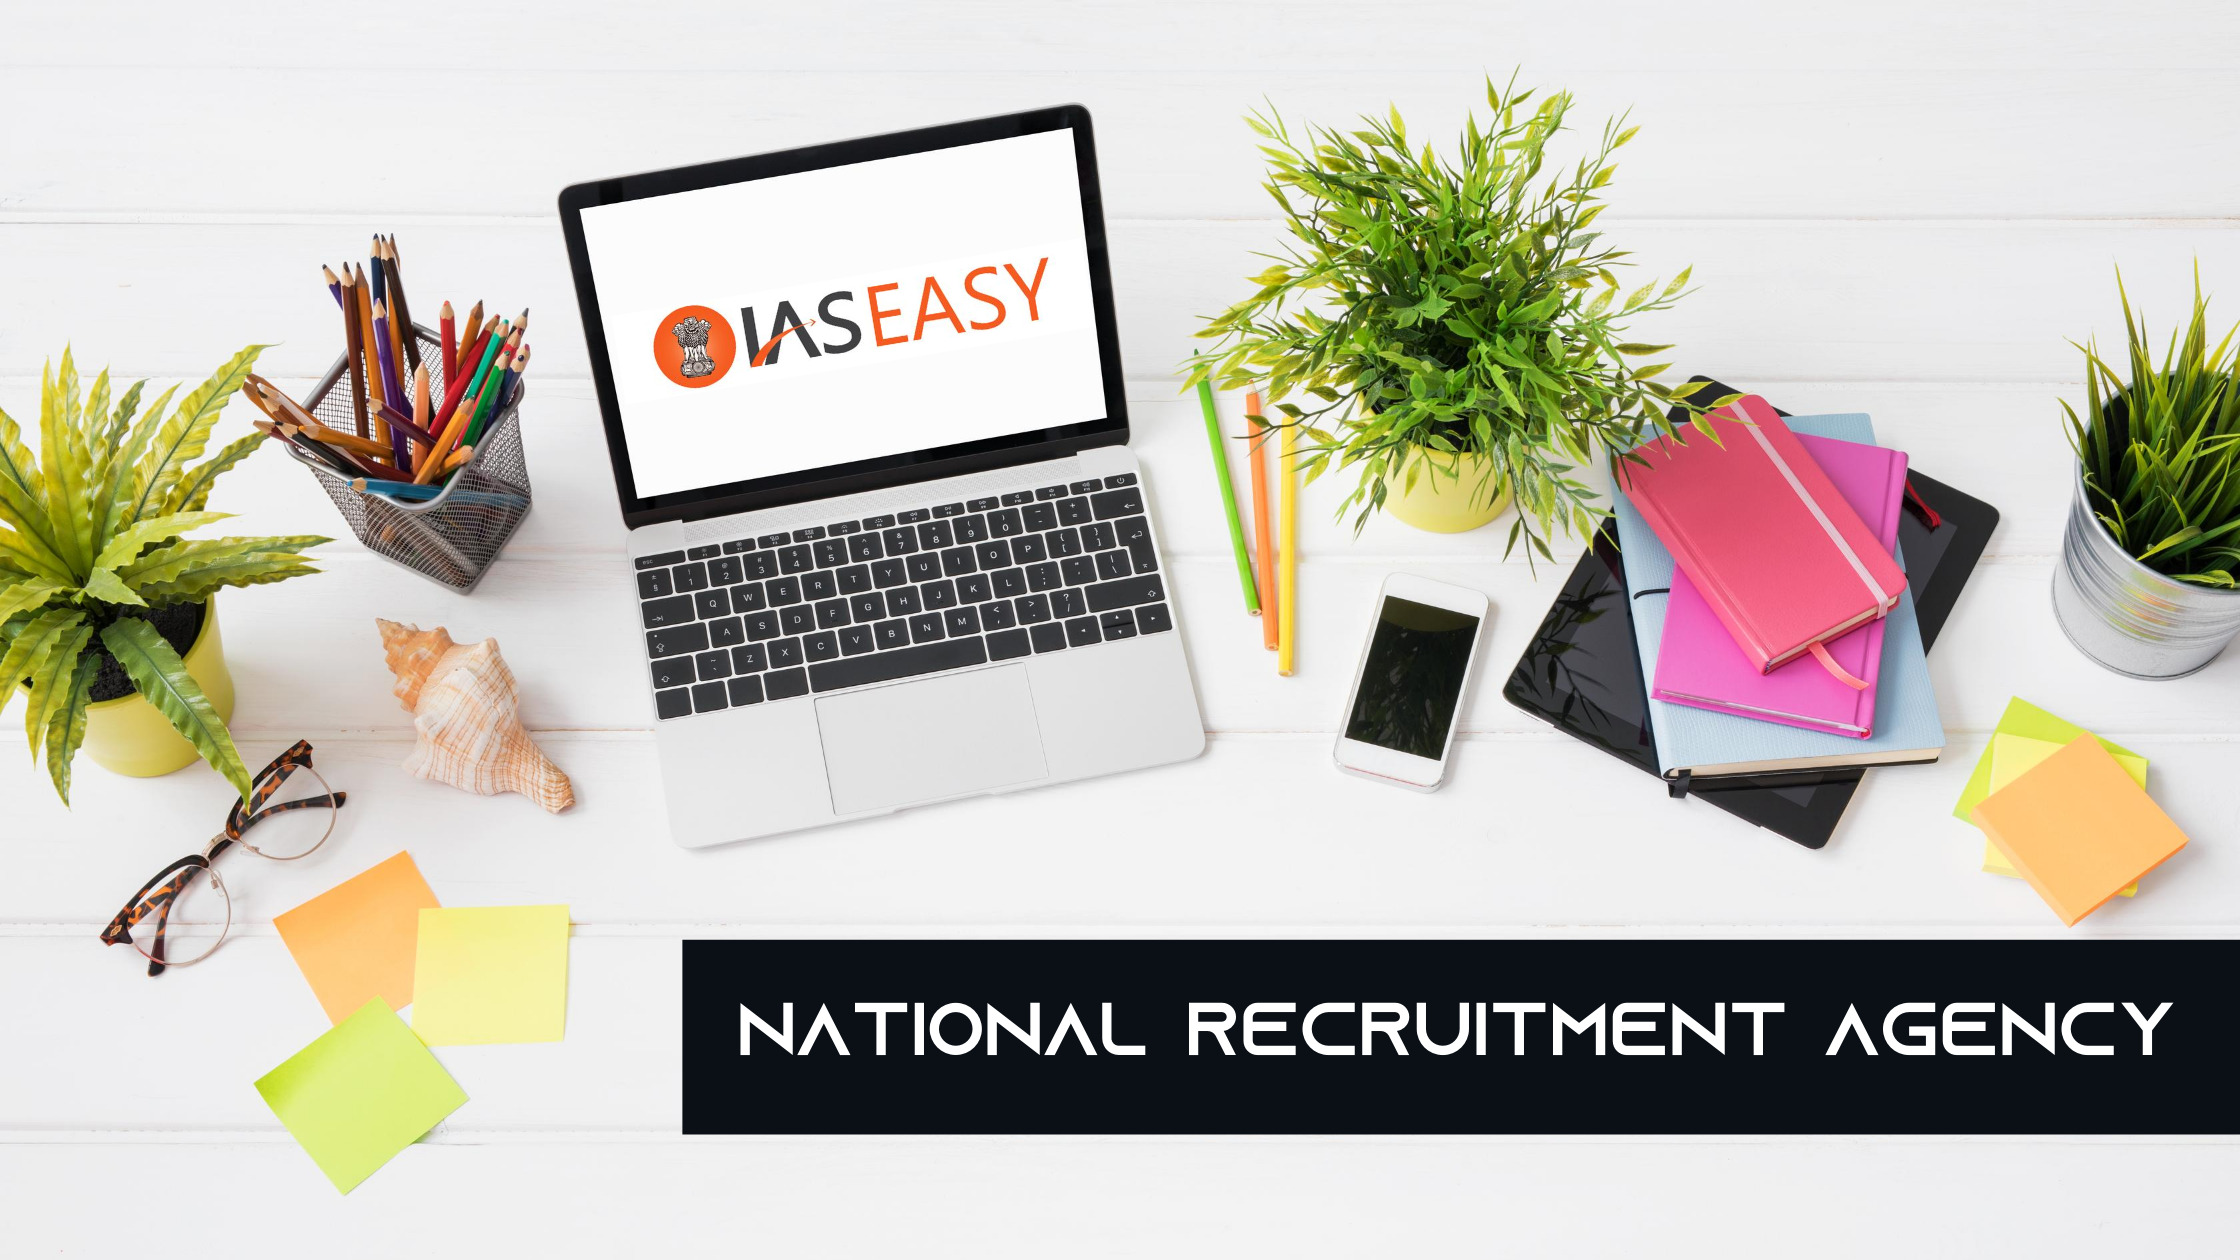 National Recruitment Agency - All you need to know!